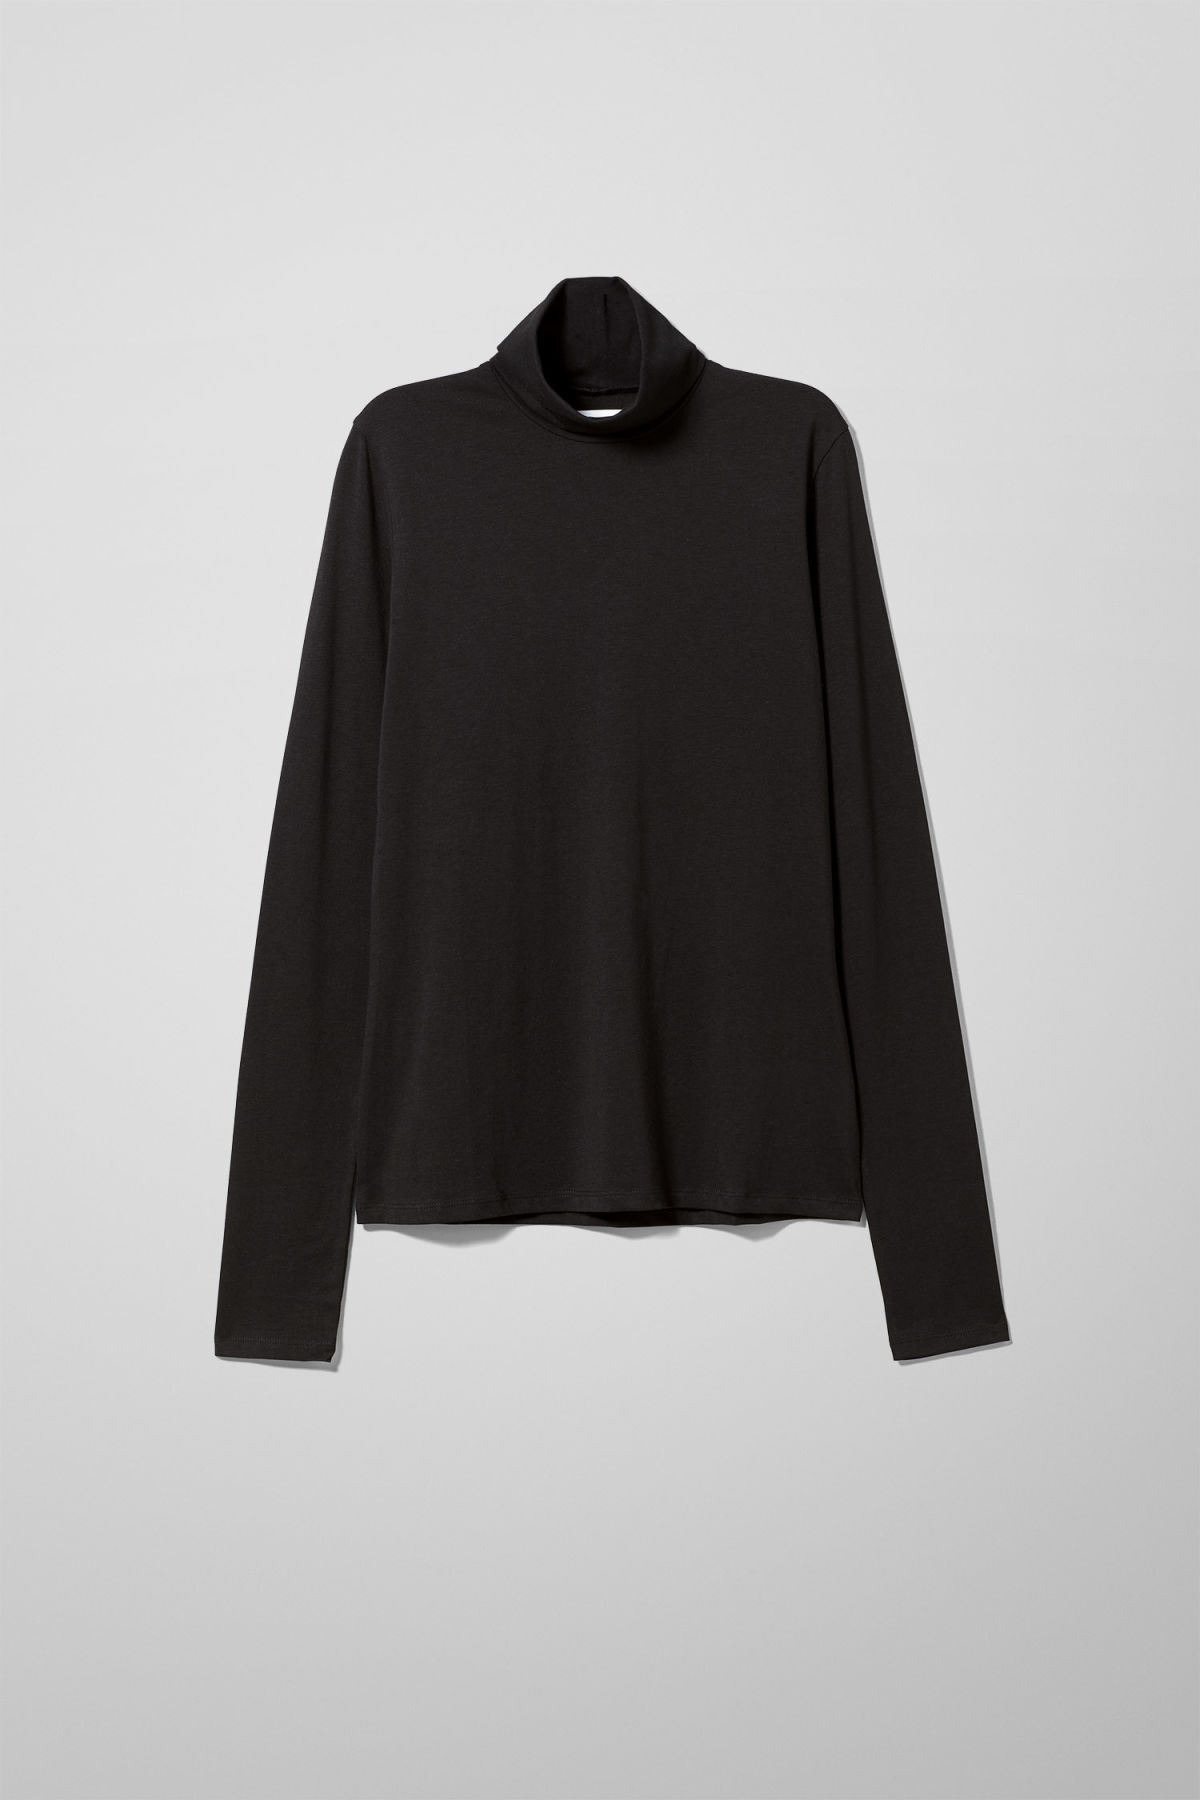 Stillife Front Image of Weekday Chie Turtleneck in Black